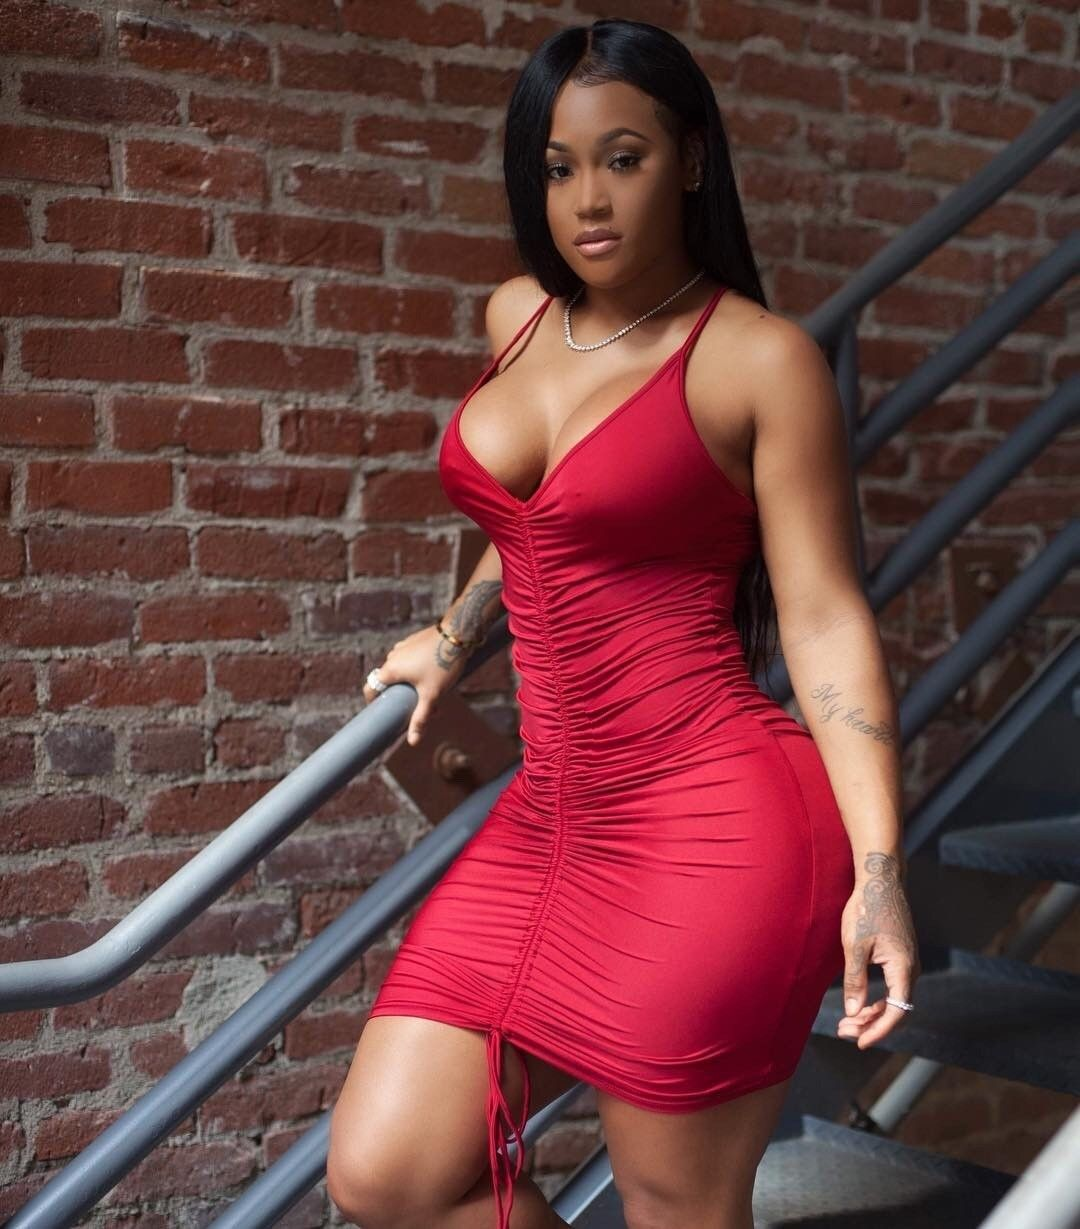 Sexy ebony tight dress pictures